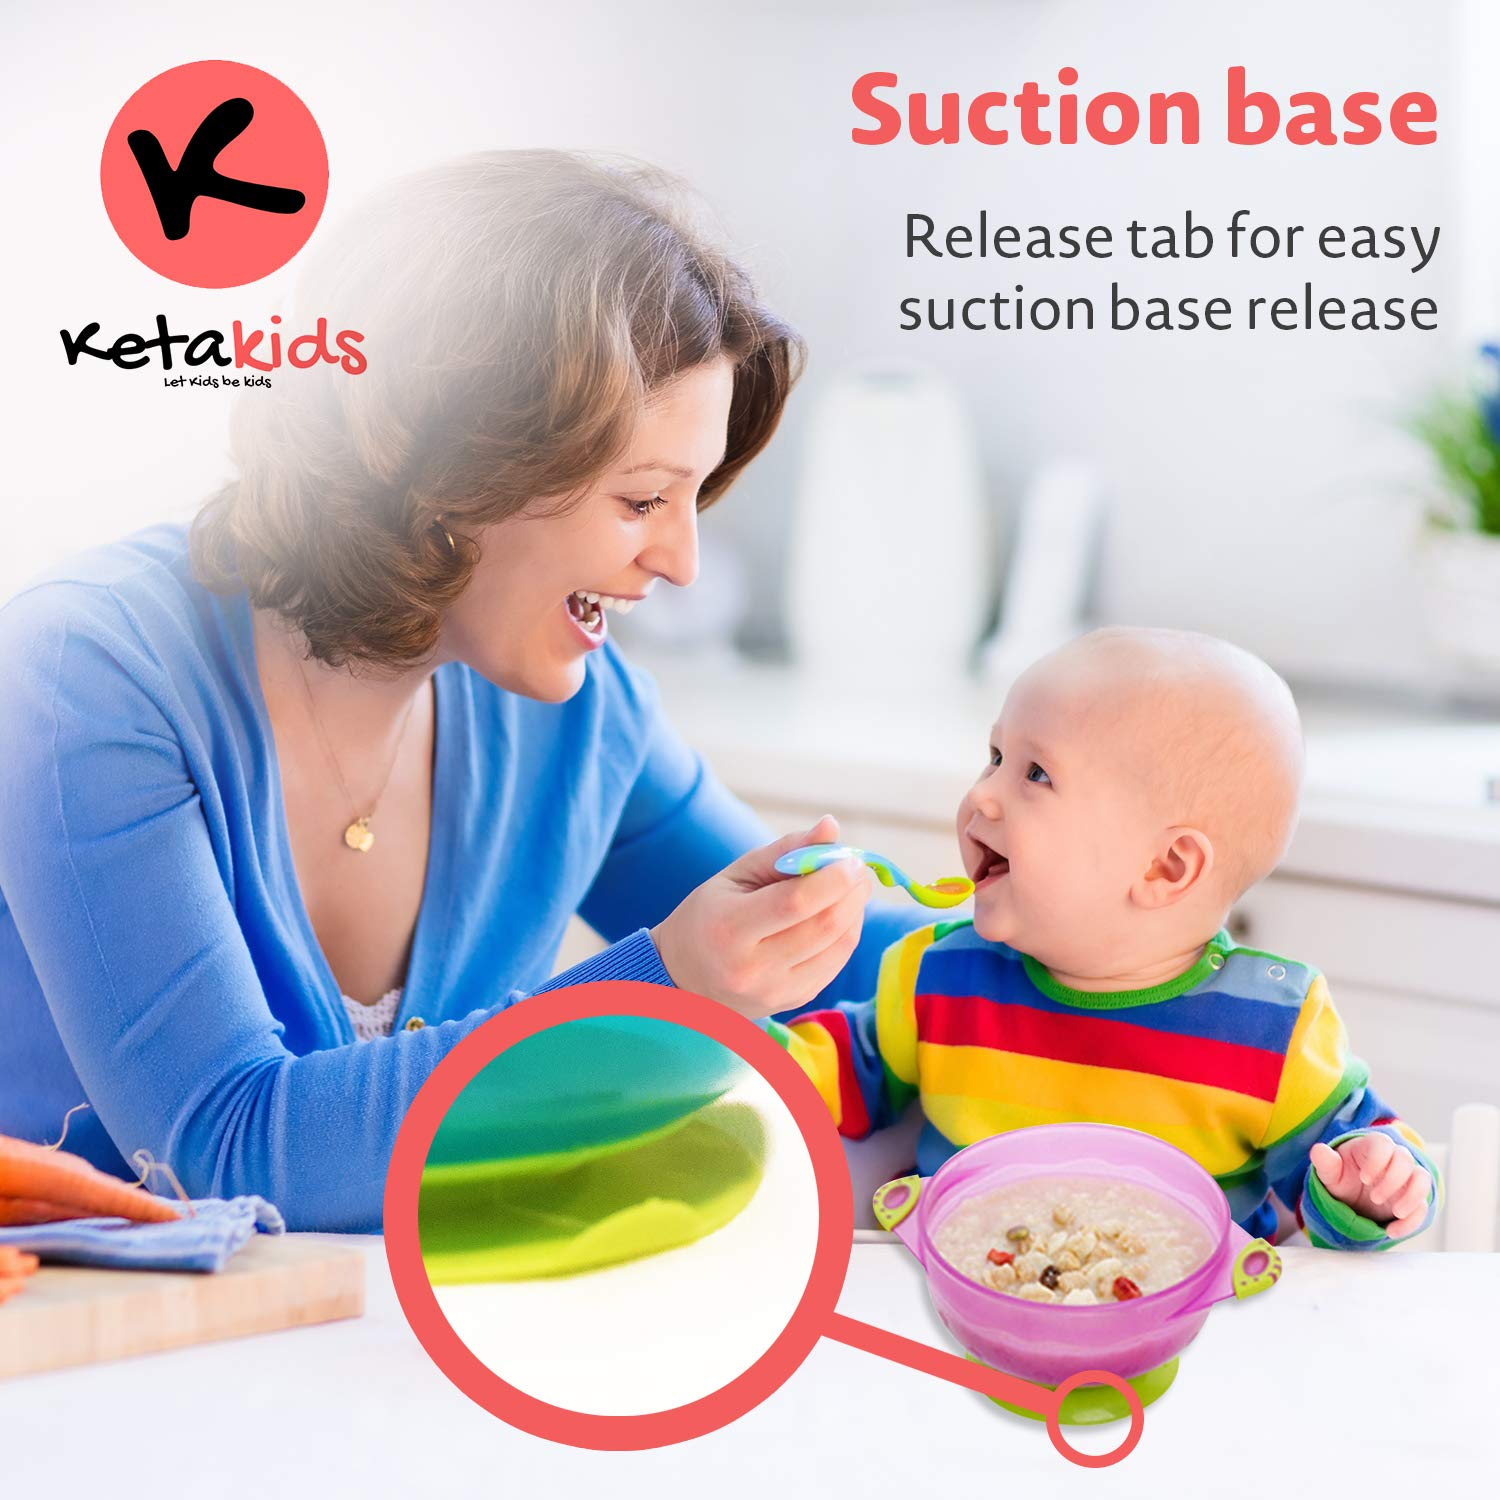 Ketakids Best Suction Baby Bowls for Toddler and Babies Set of 3 Spill Proof Stackable to Go Suction Bowls with Seal Tight Lids Great Baby Shower Gift Set